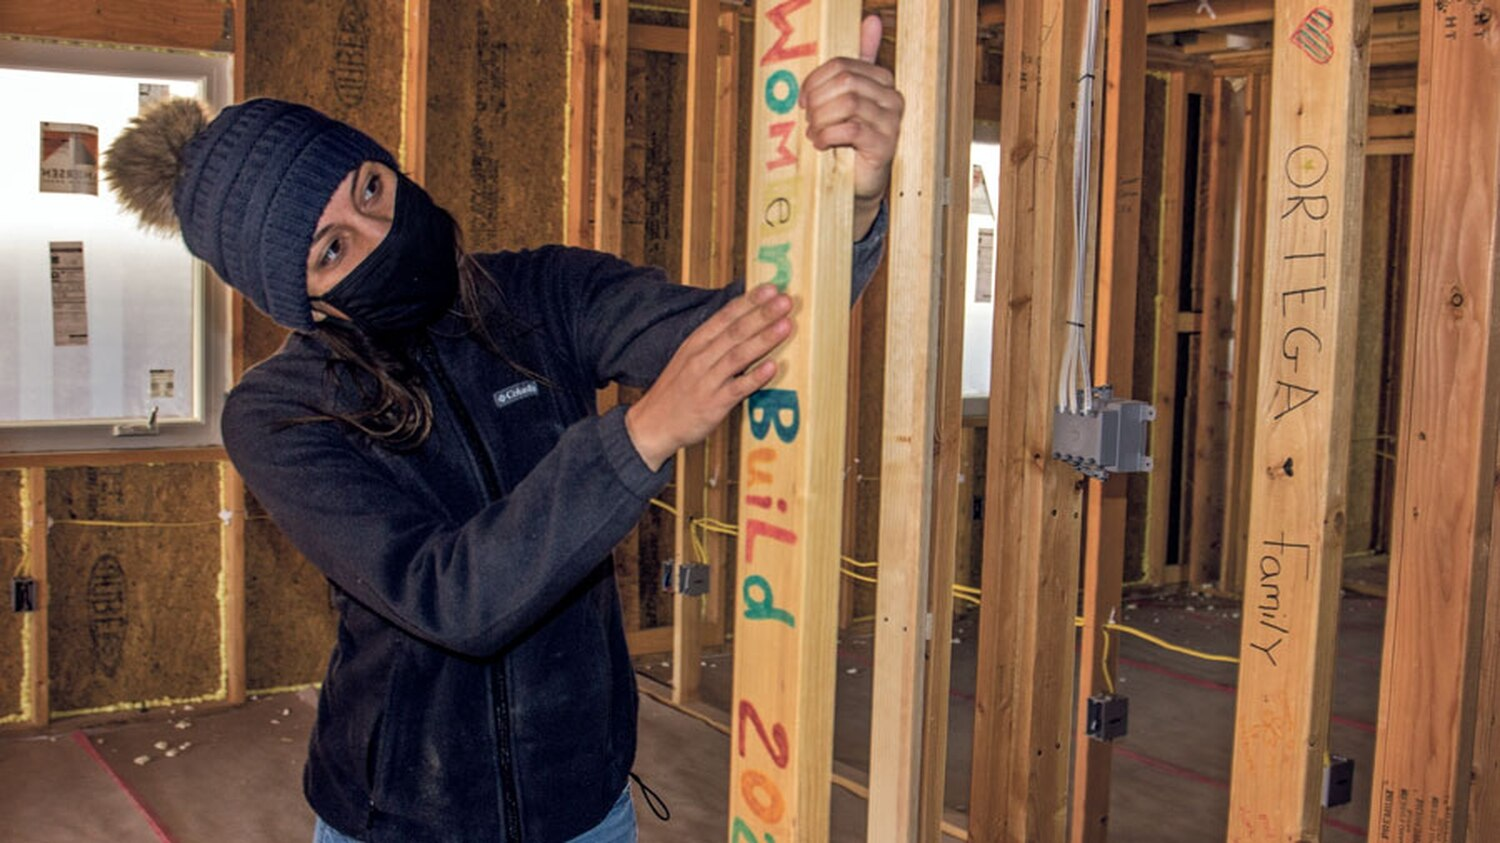 Ivette Ortega shows SFR where friends, family, and other Habitat for Humanity volunteers signed their names and wrote notes of encouragement on the frame of her house.